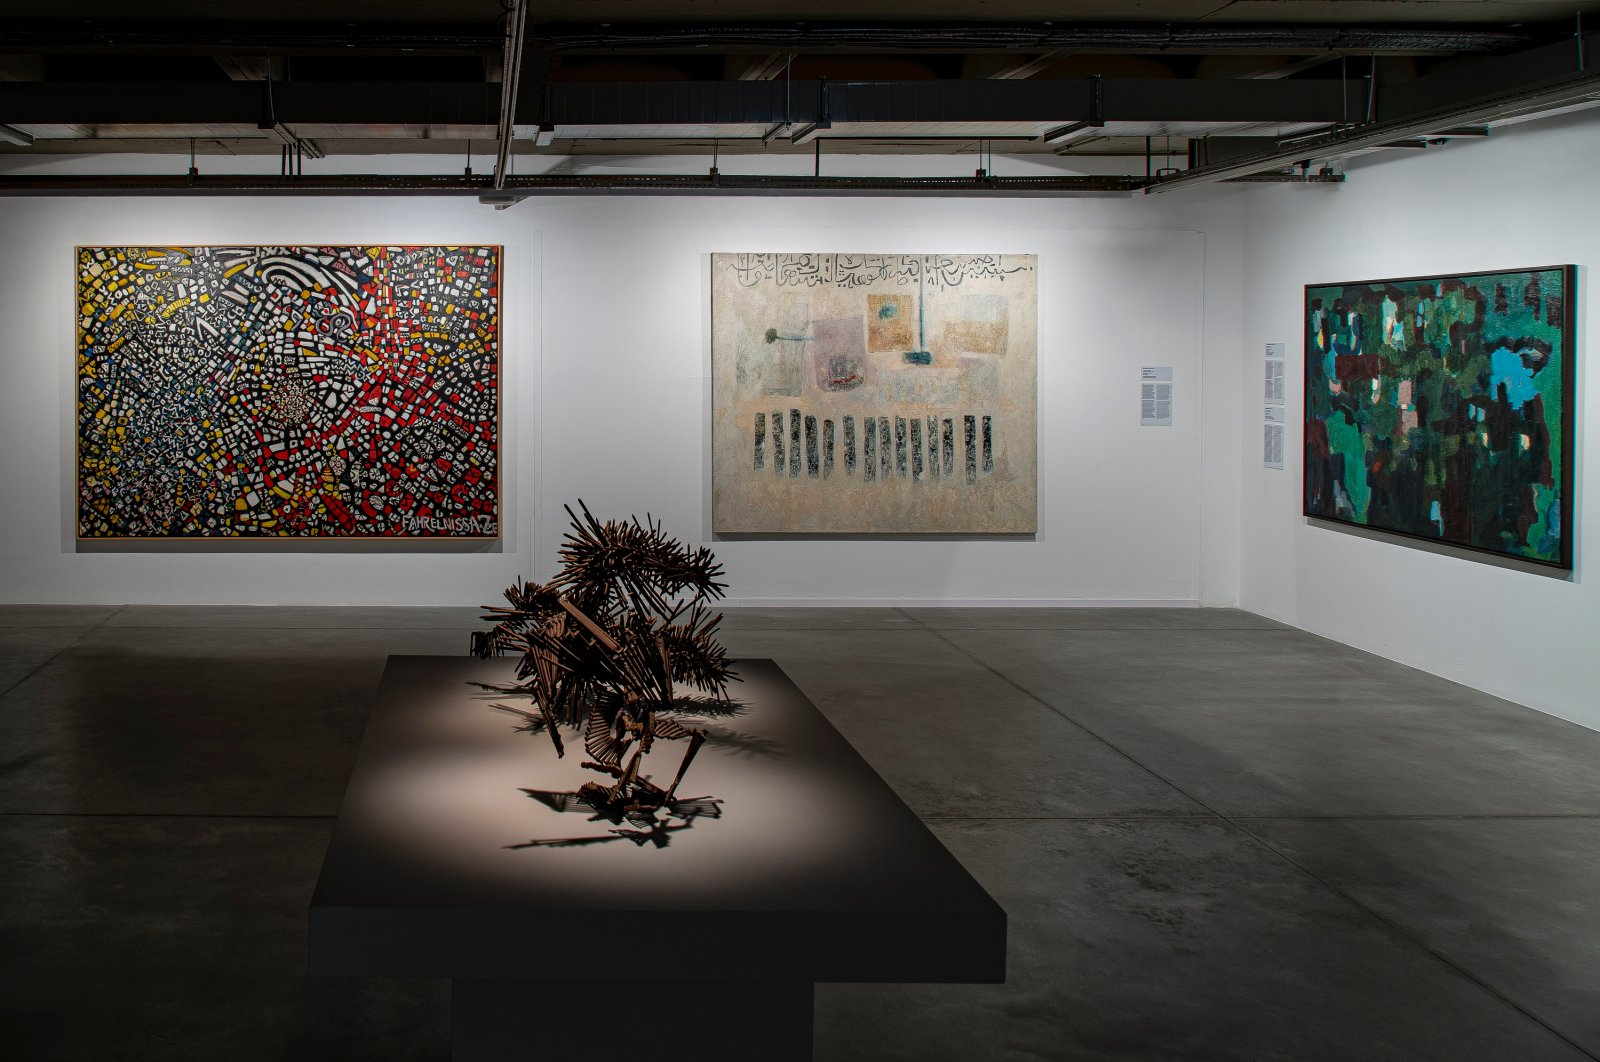 A view from the collection exhibition at Istanbul Modern. (Photo courtesy of Istanbul Modern)